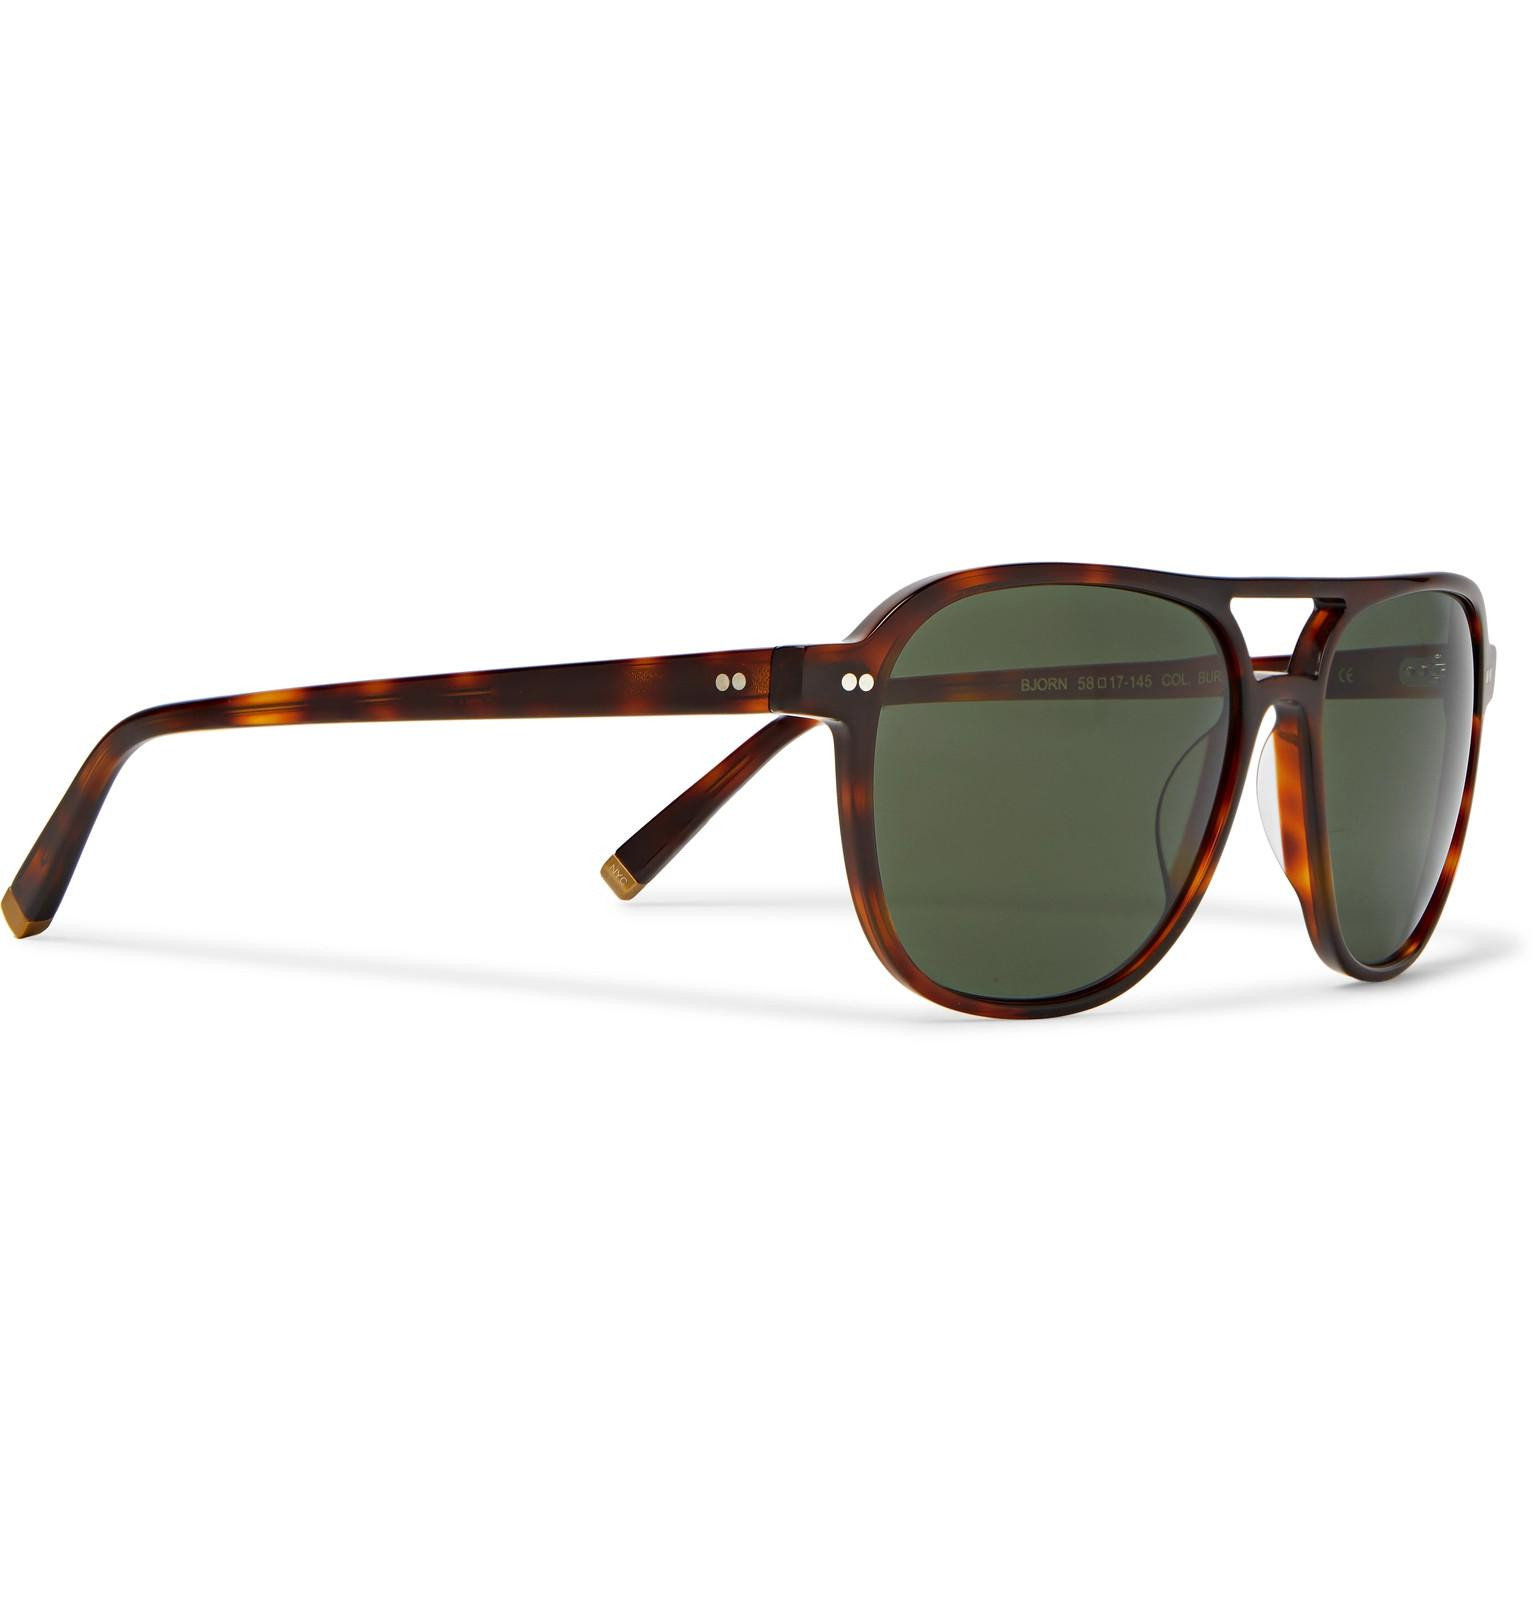 2706bdac5a2c Moscot - Multicolor Bjorn Aviator-style Tortoiseshell Acetate Sunglasses  for Men - Lyst. View fullscreen